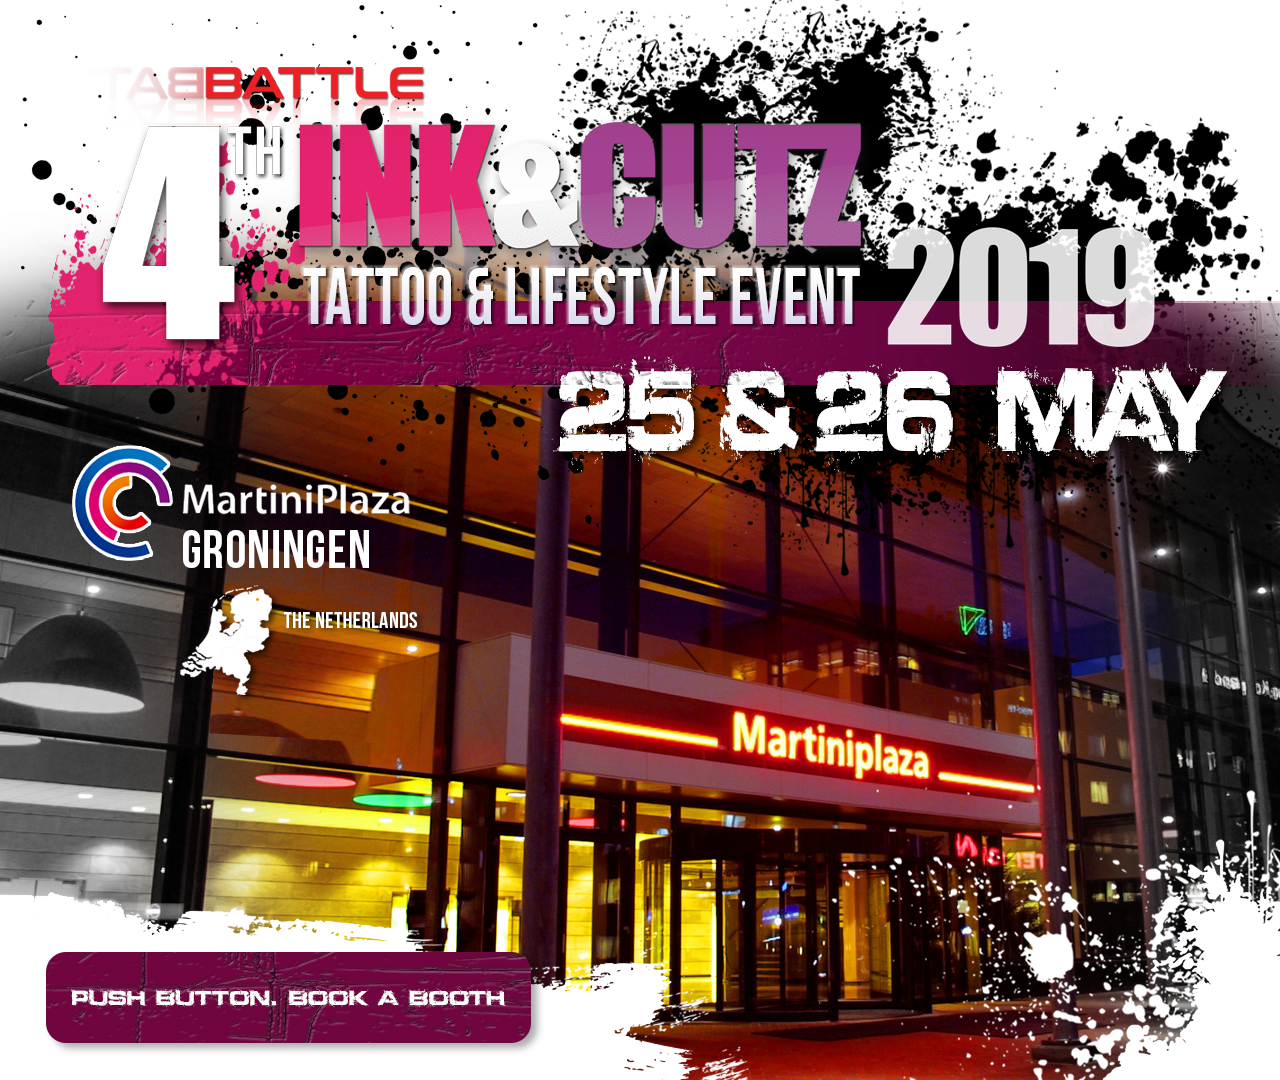 inkandcutz-tattoo-and-lifestyle-event-home-banner-image-2019-02-martiniplaza